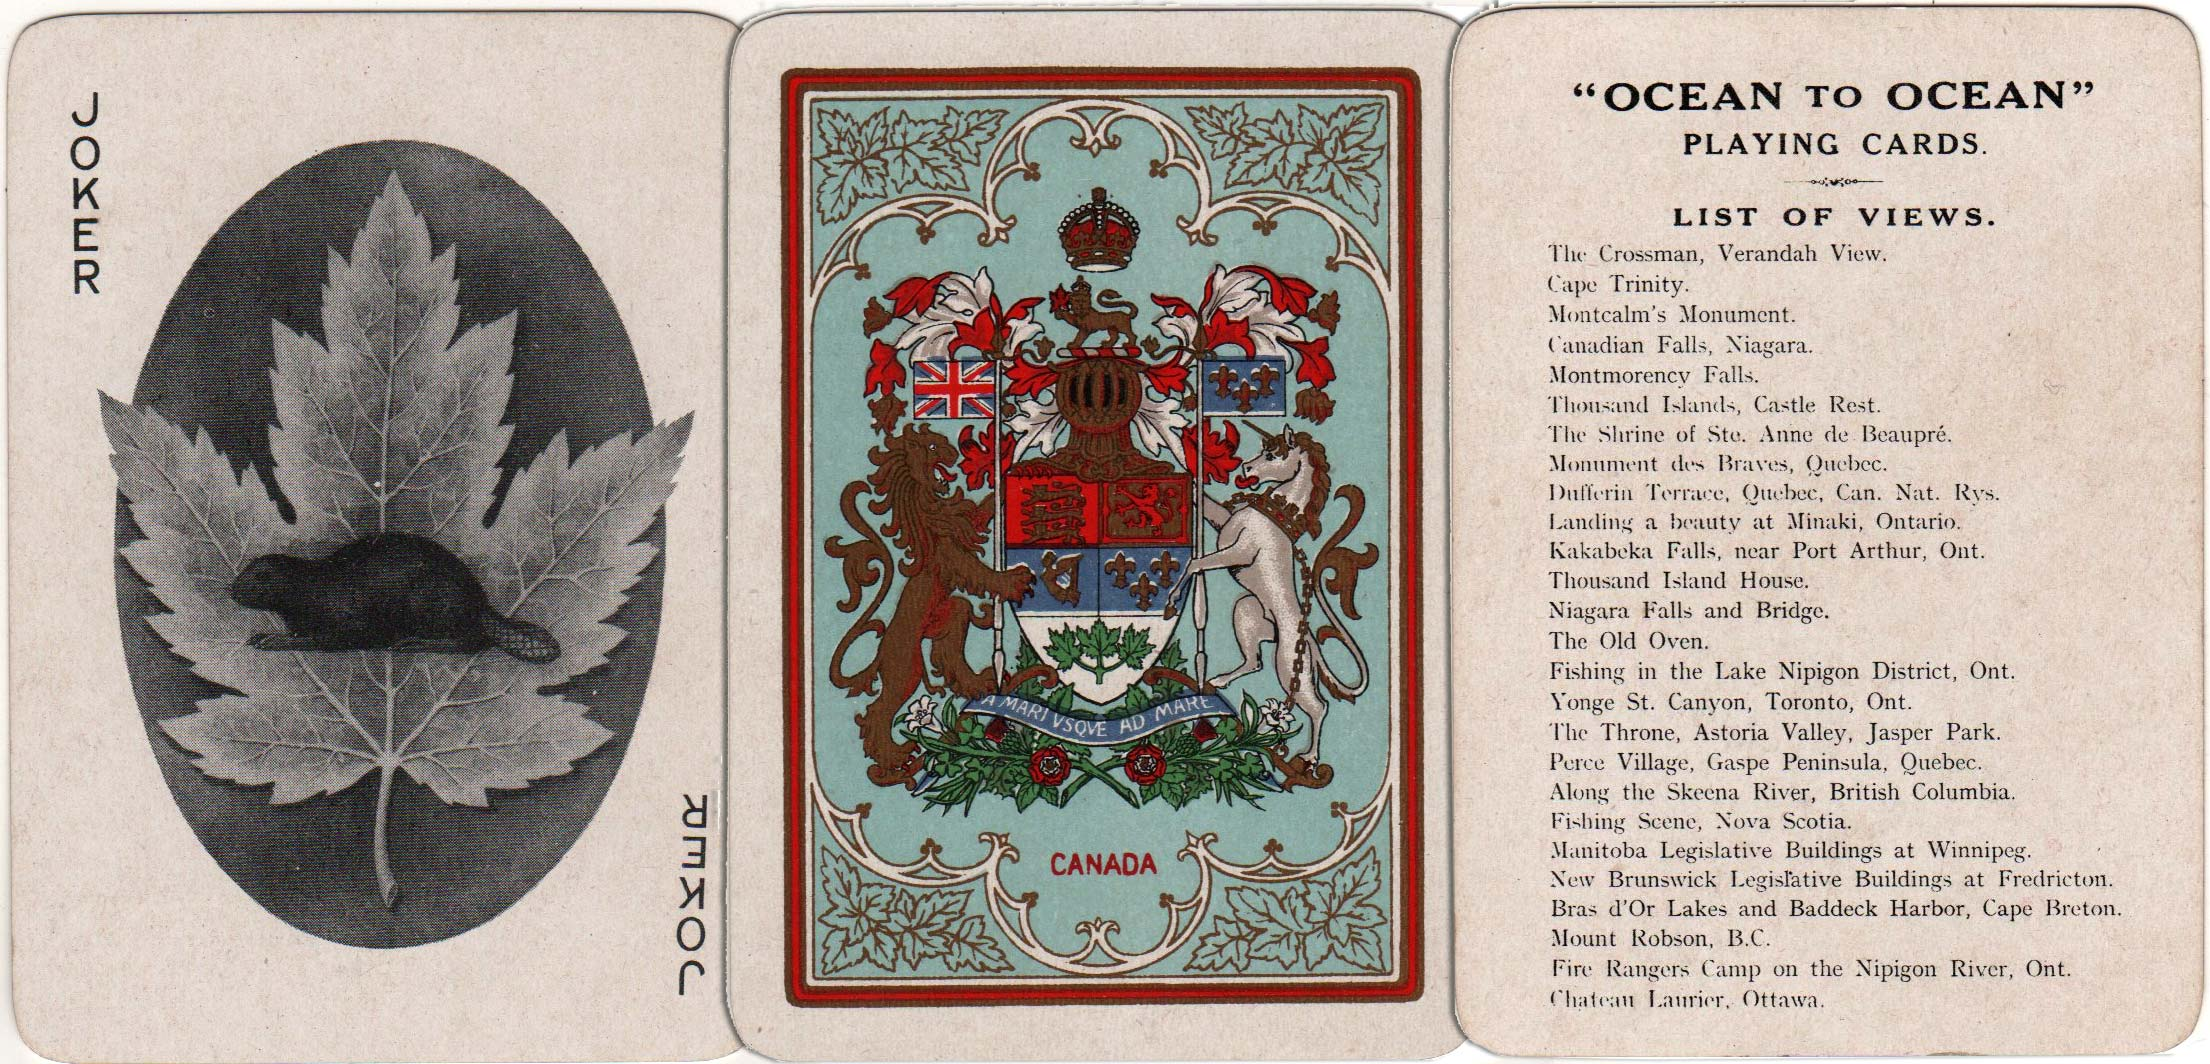 Ocean to Ocean Souvenir of Canada by Chas Goodall & Son Ltd, c.1905